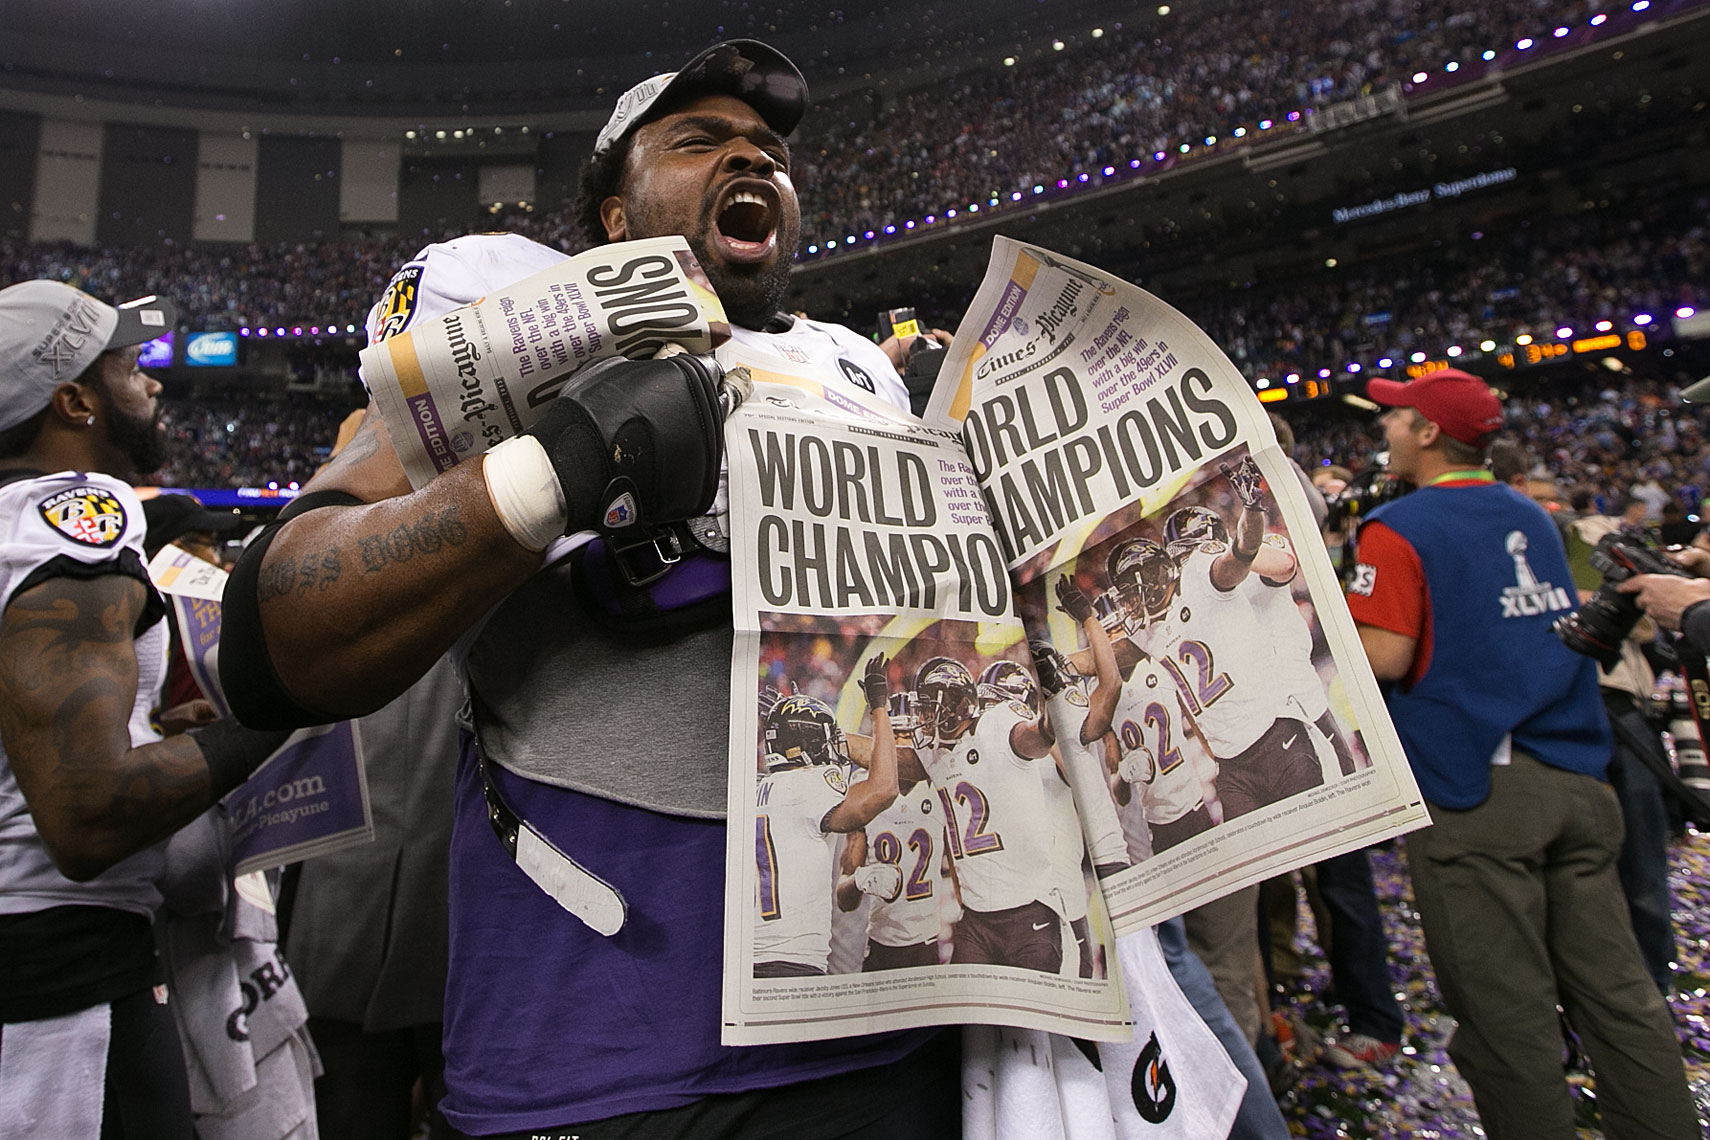 Bobbie Williams Super Bowl XLVII celebration